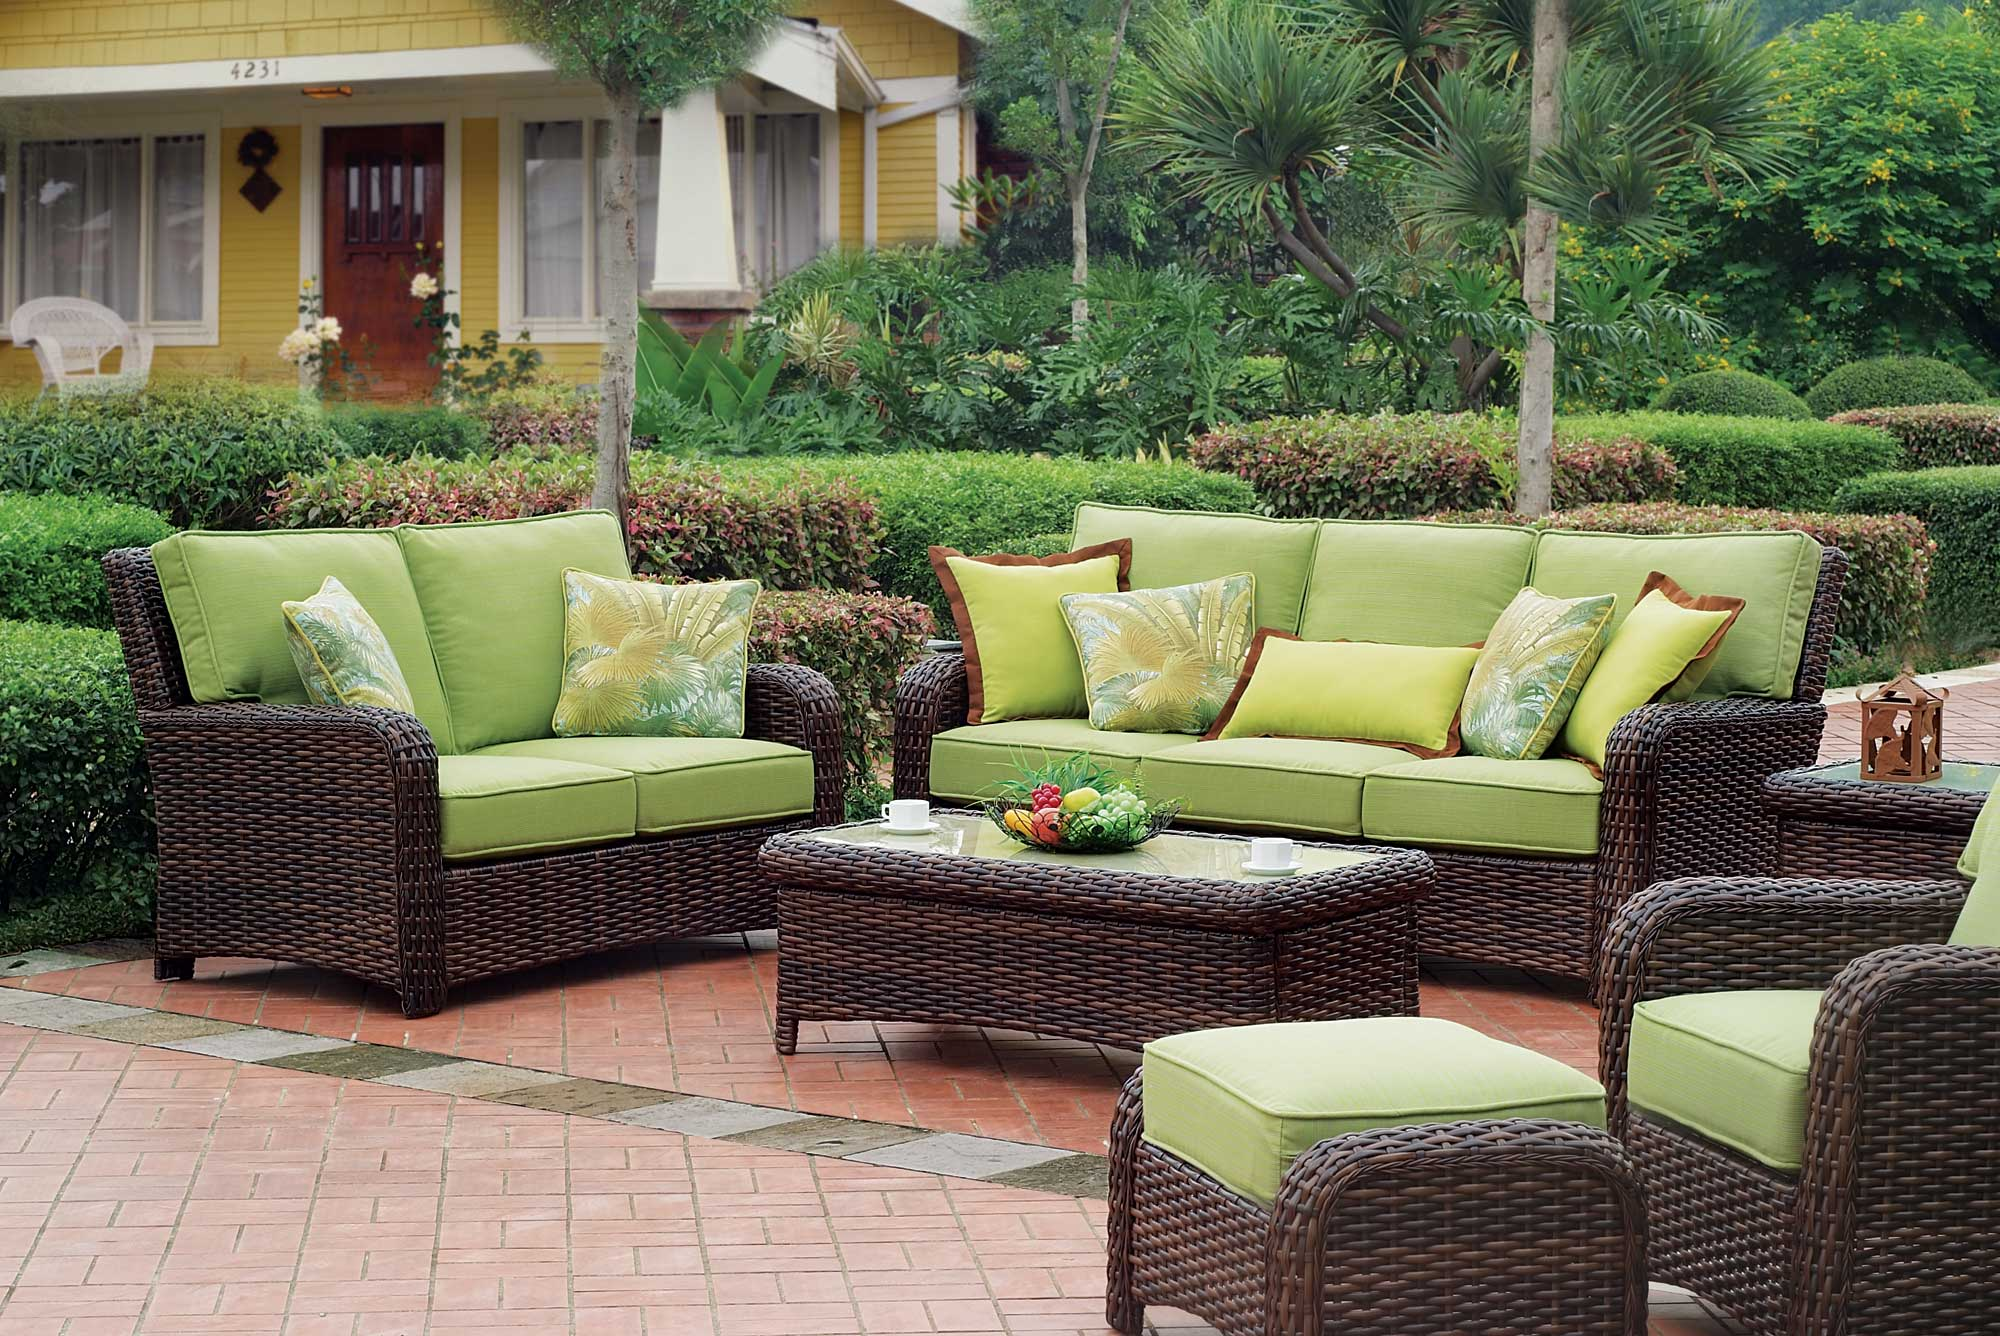 Outdoor Living Tips for Keeping Your Rattan Furniture Looking New The Fash